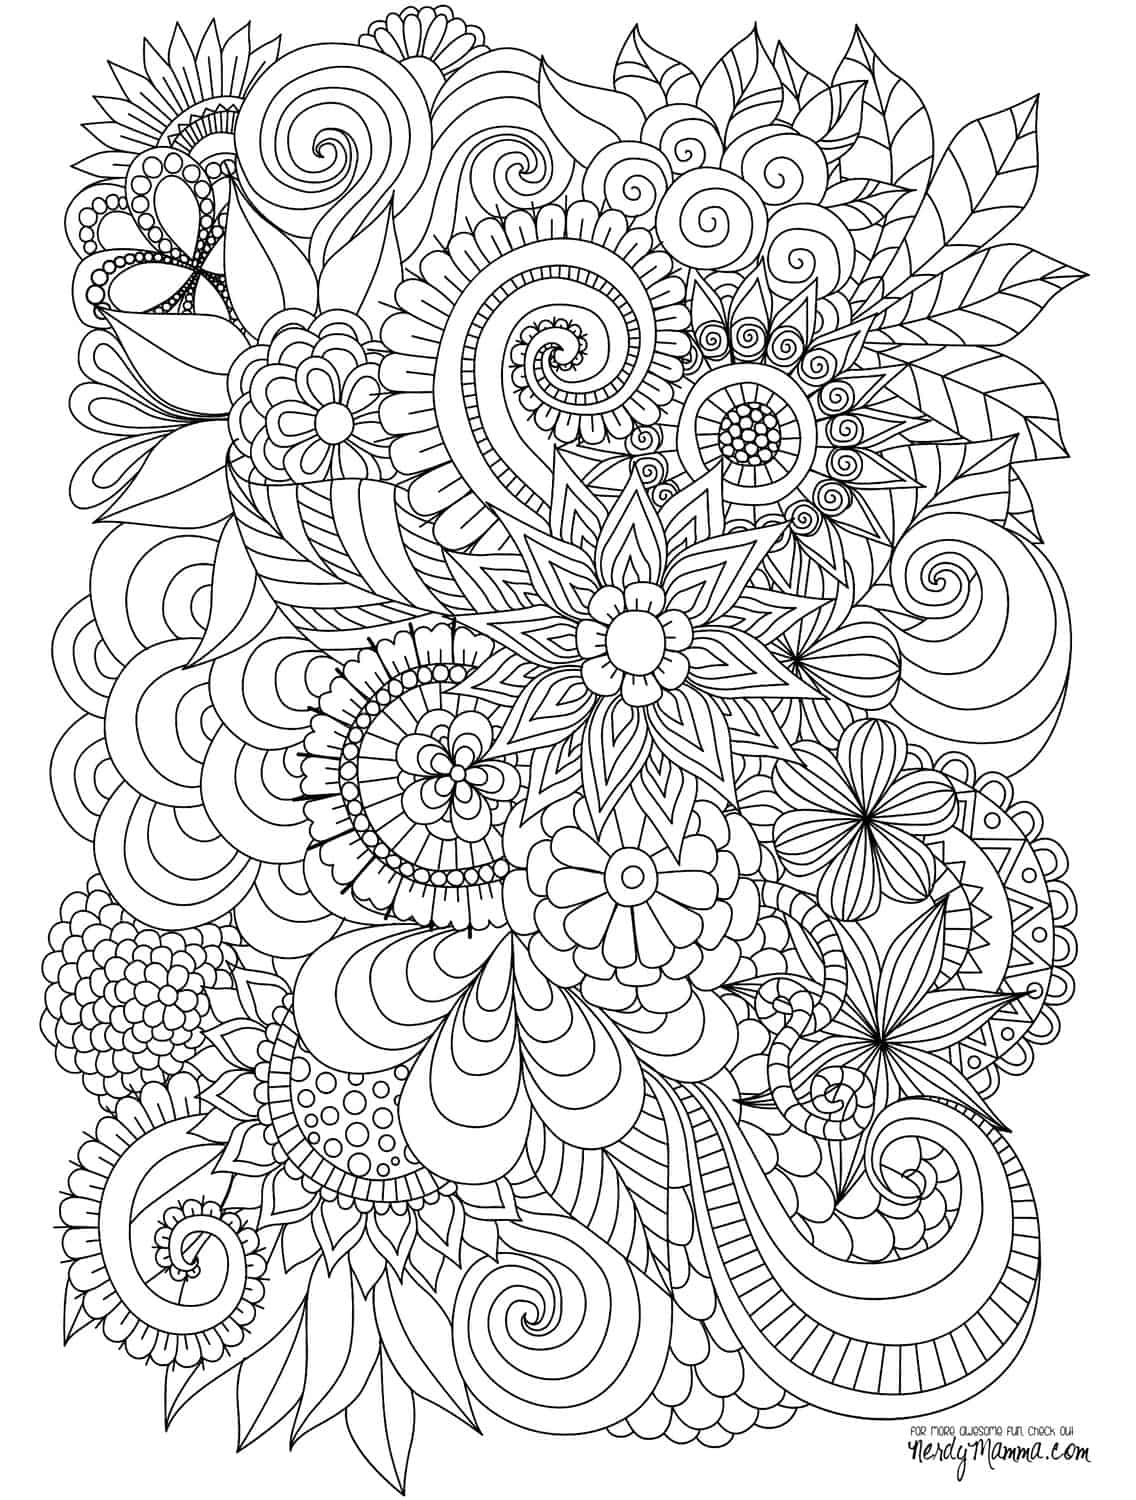 dating sites for teens 13 and up free printable kids coloring pages